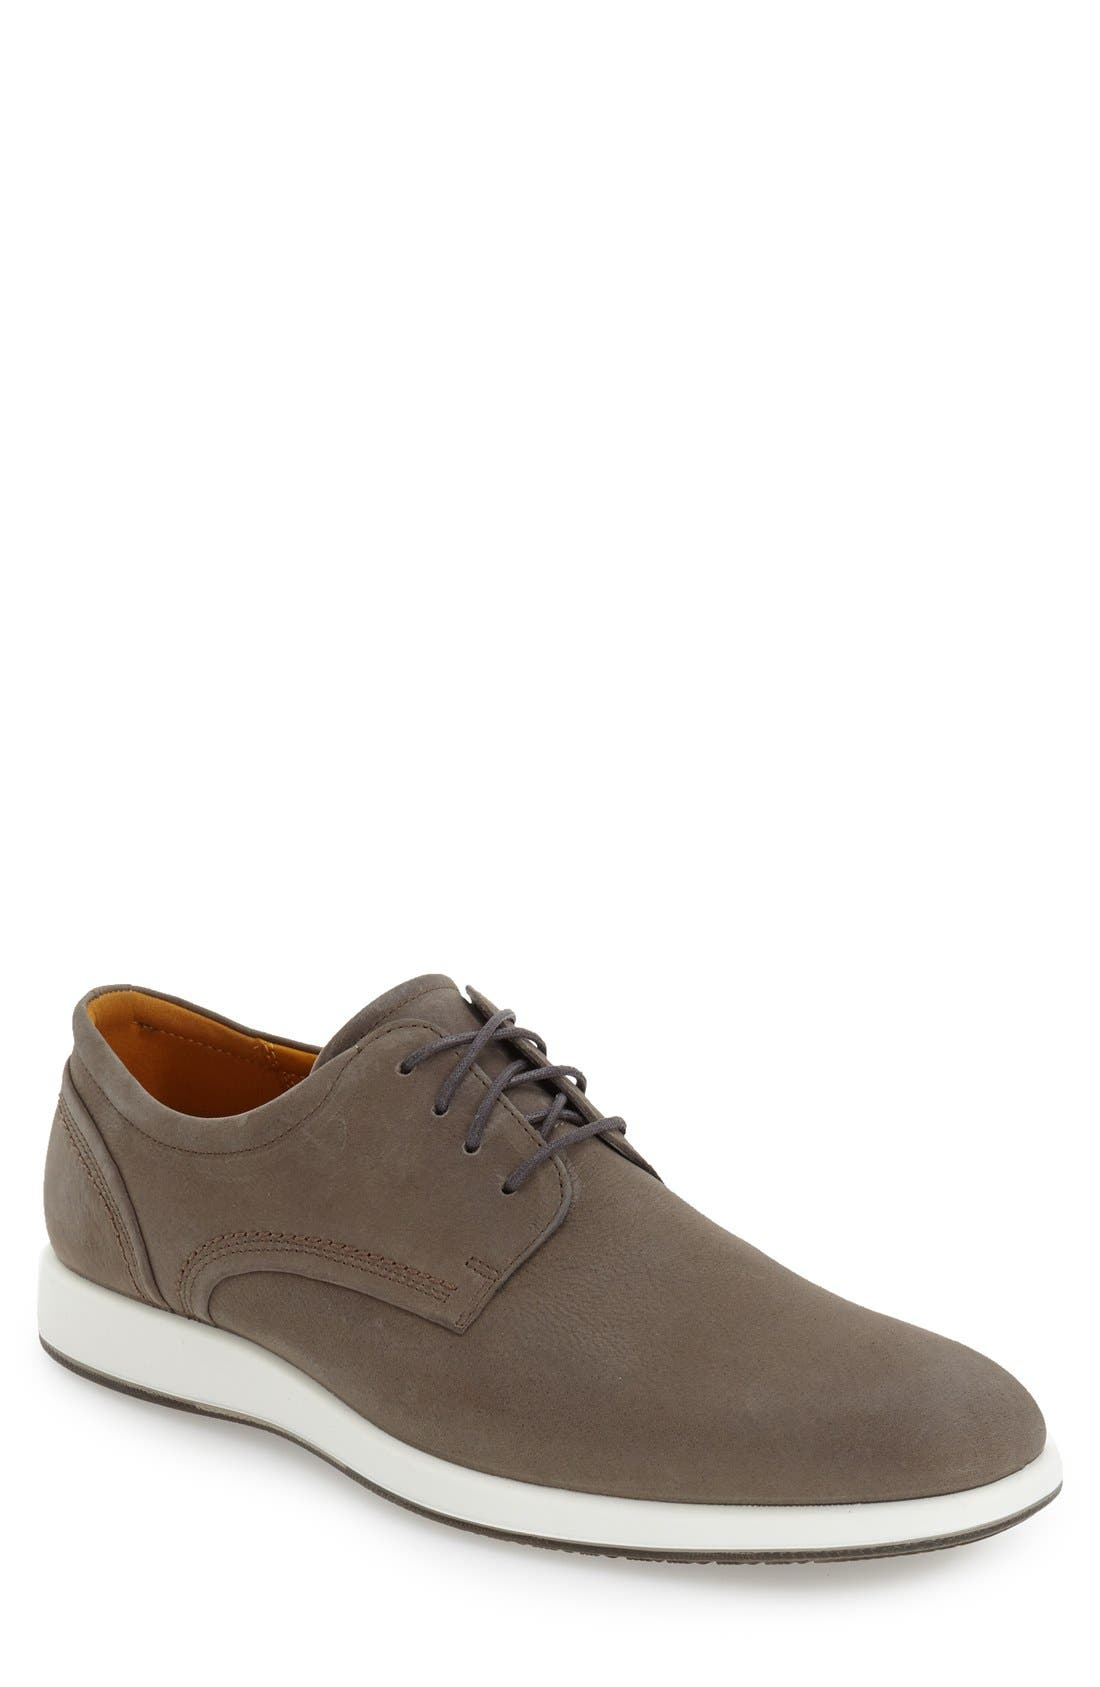 'Jared' Leather Oxford,                             Main thumbnail 1, color,                             062